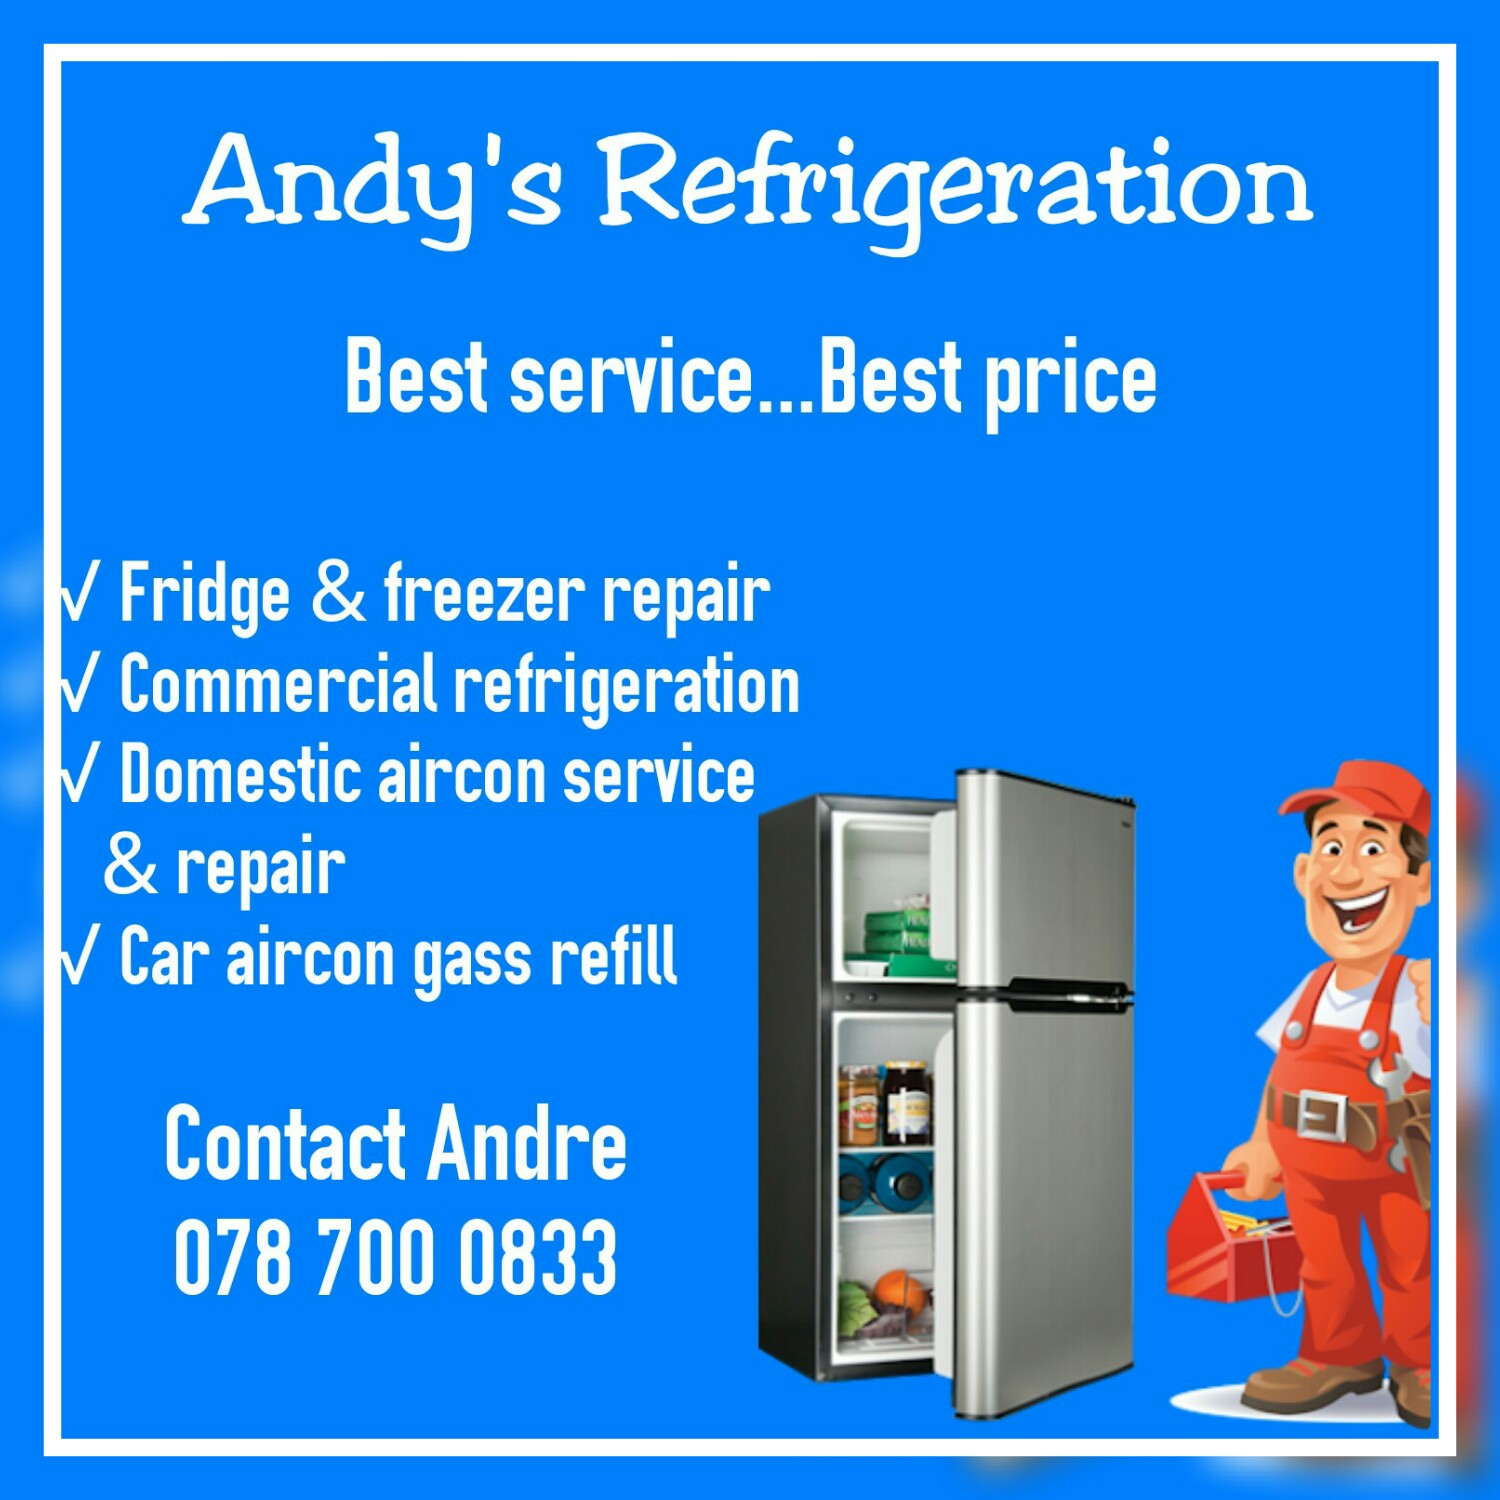 Andy's Refrigeration